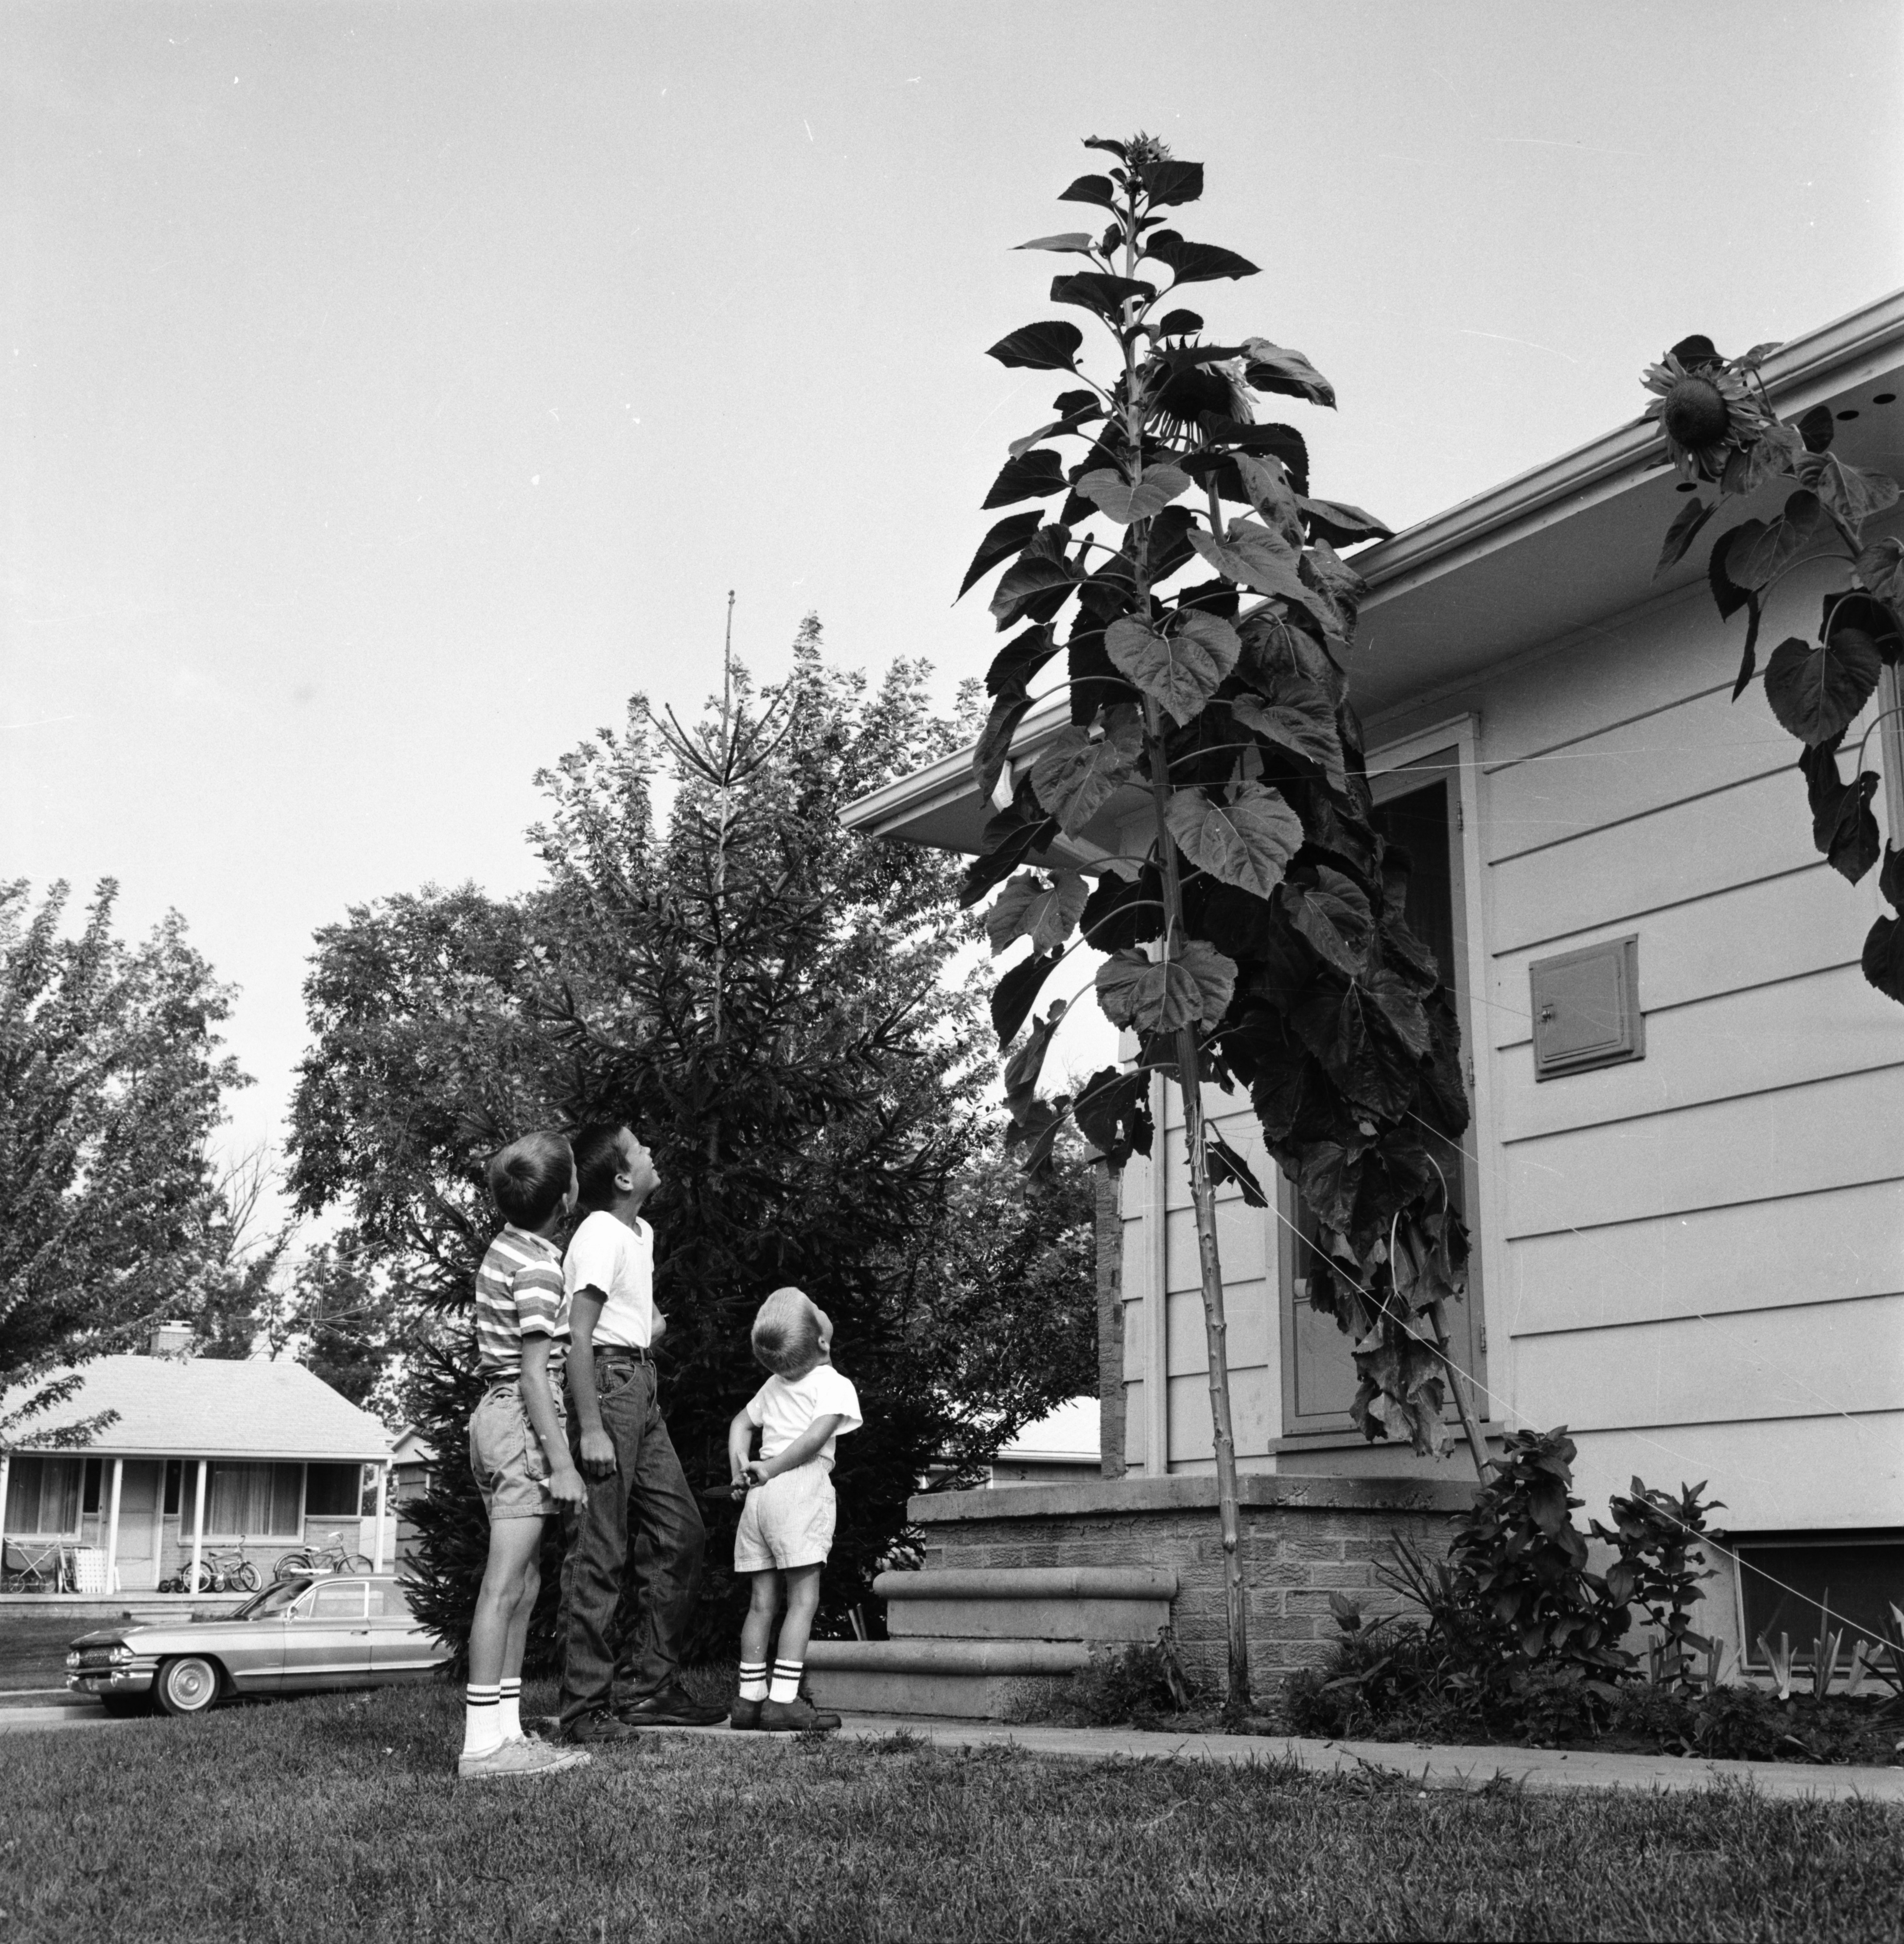 Sunflowers Grow In Yard of John Kennard's Home to Height of 13ft. 8in., August 1963 image